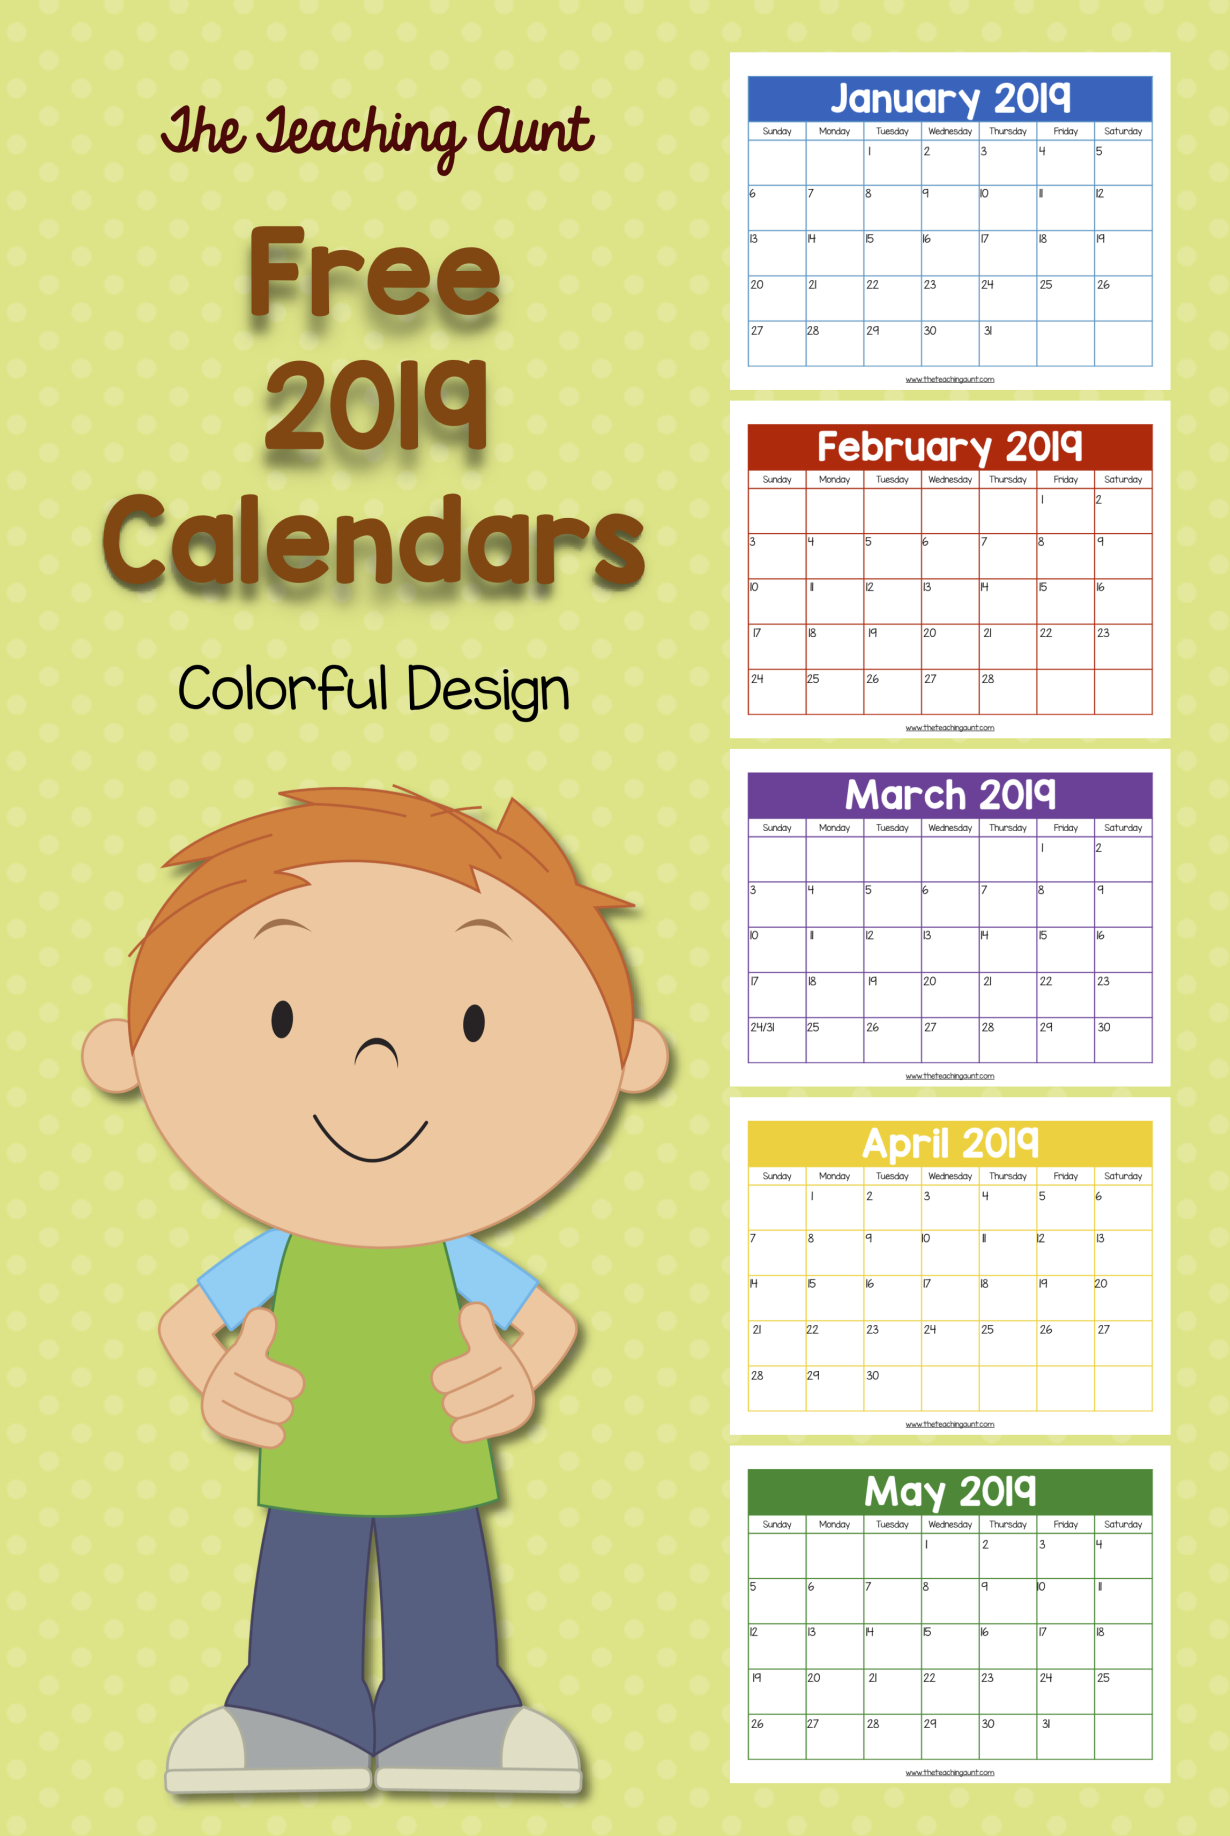 Free Colorful 2019 Calendar | Preschool Calendar, Teacher